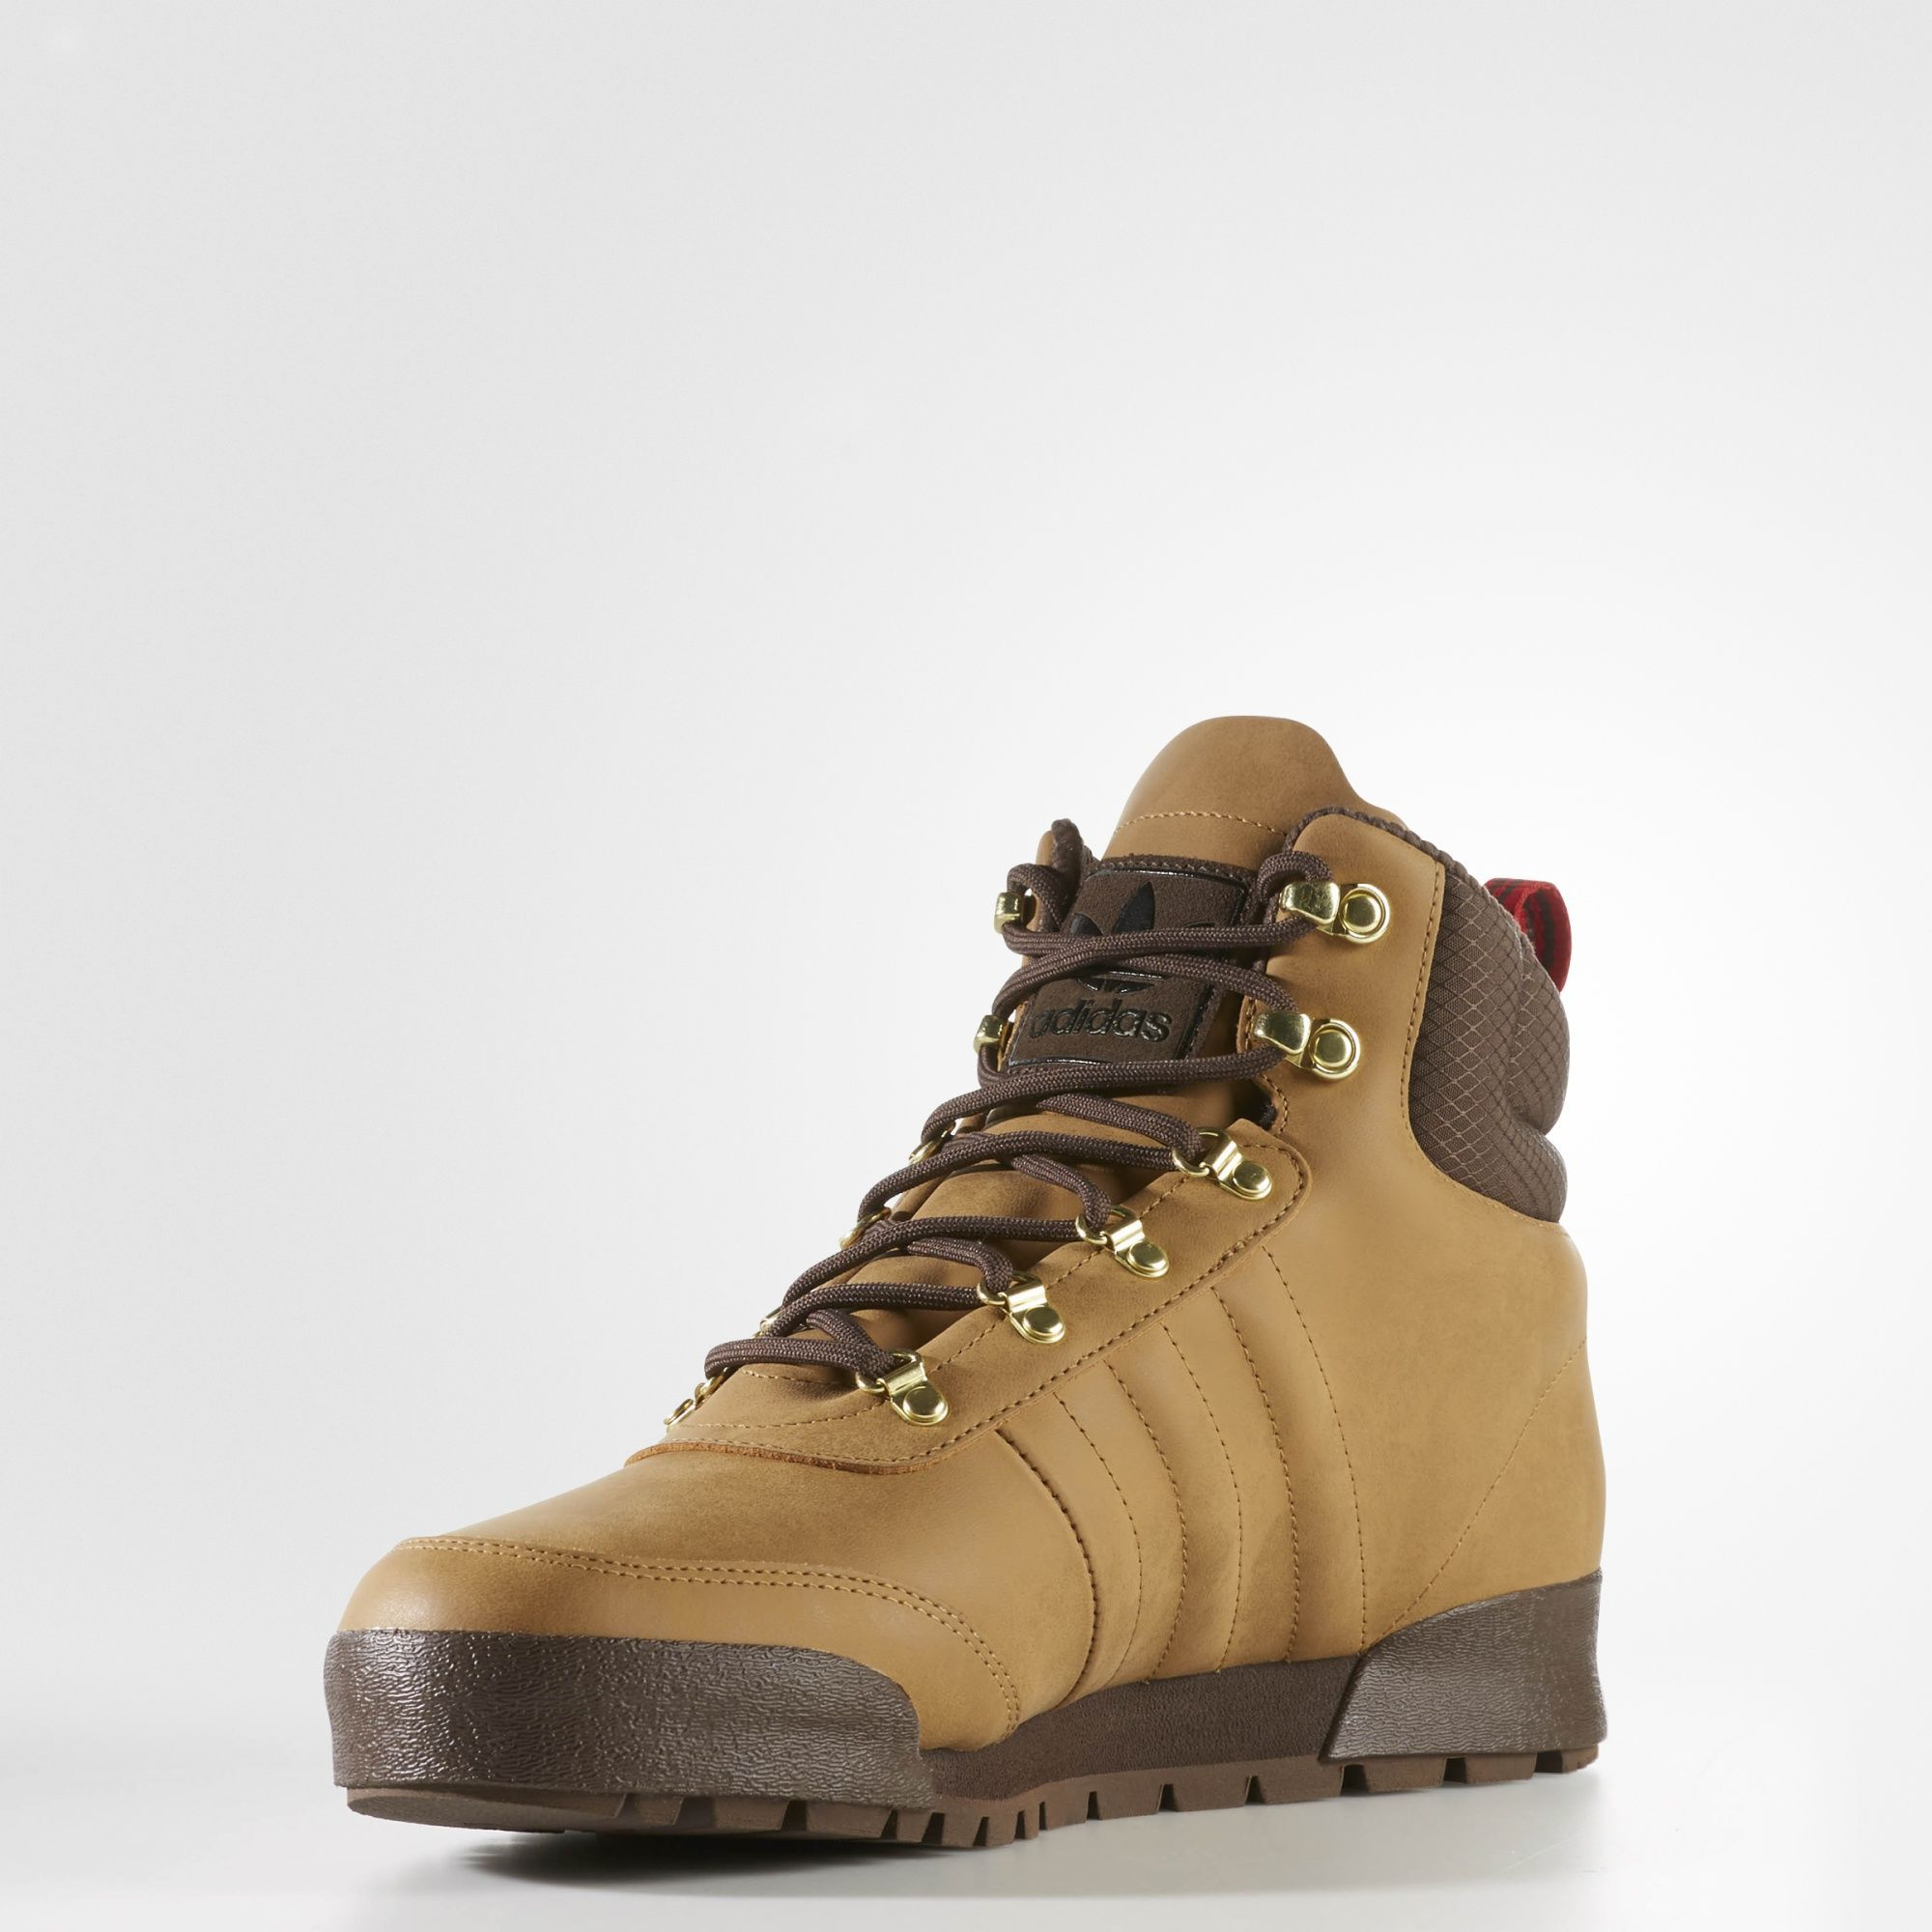 adidas originals Männer Sneaker Jake Boot 2.0 in | real